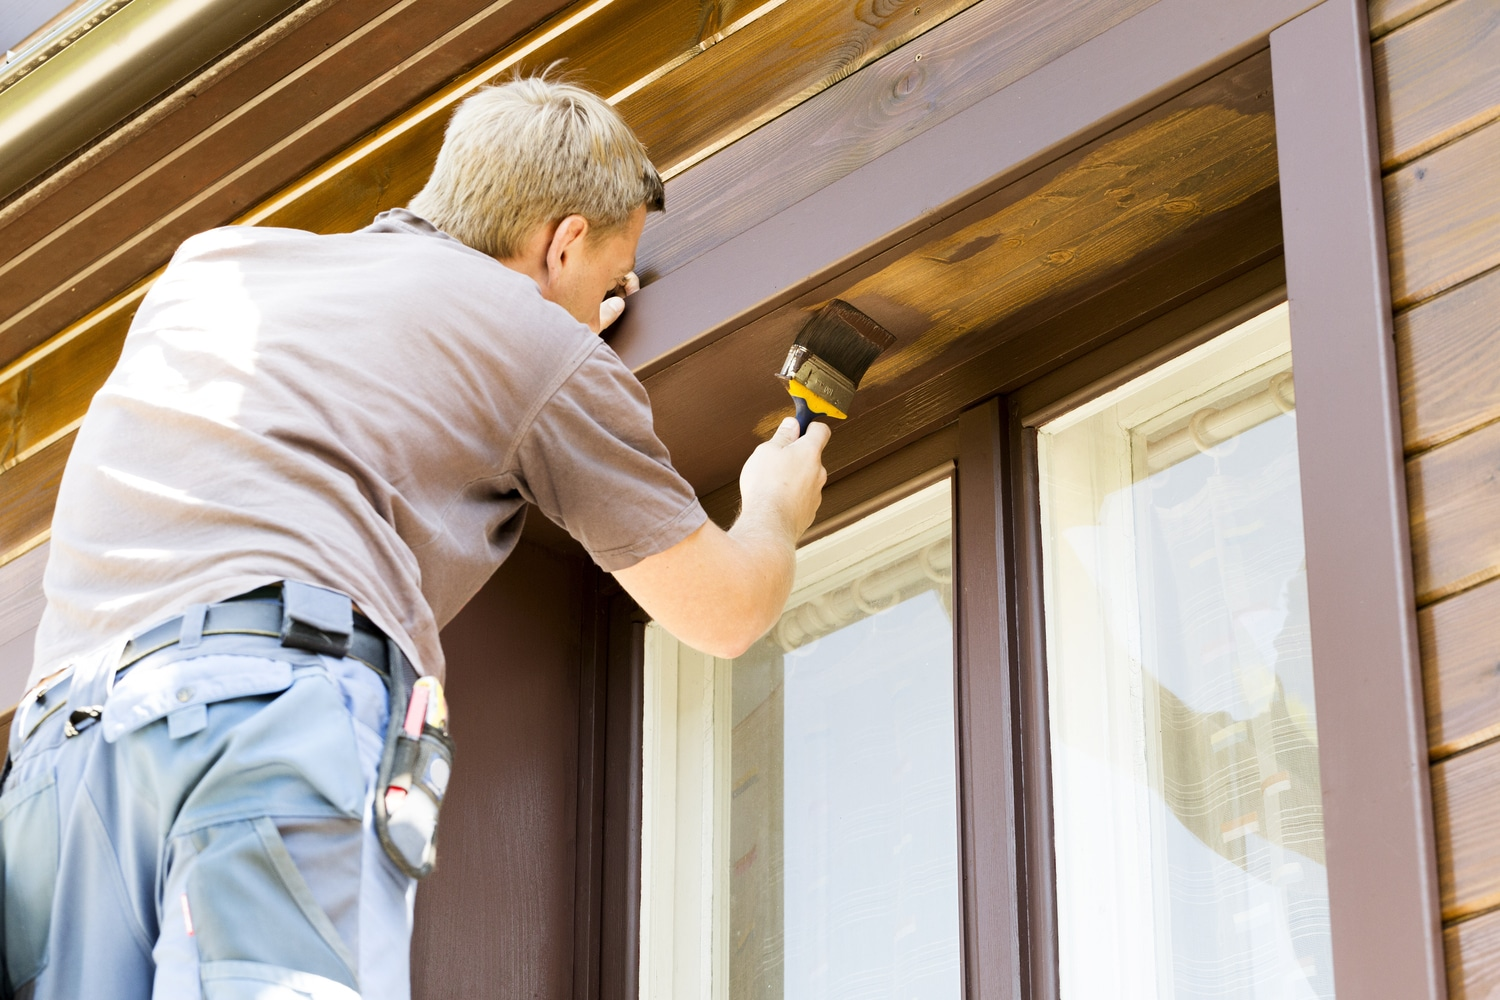 Painting Companies to Contact If You Need Repairs